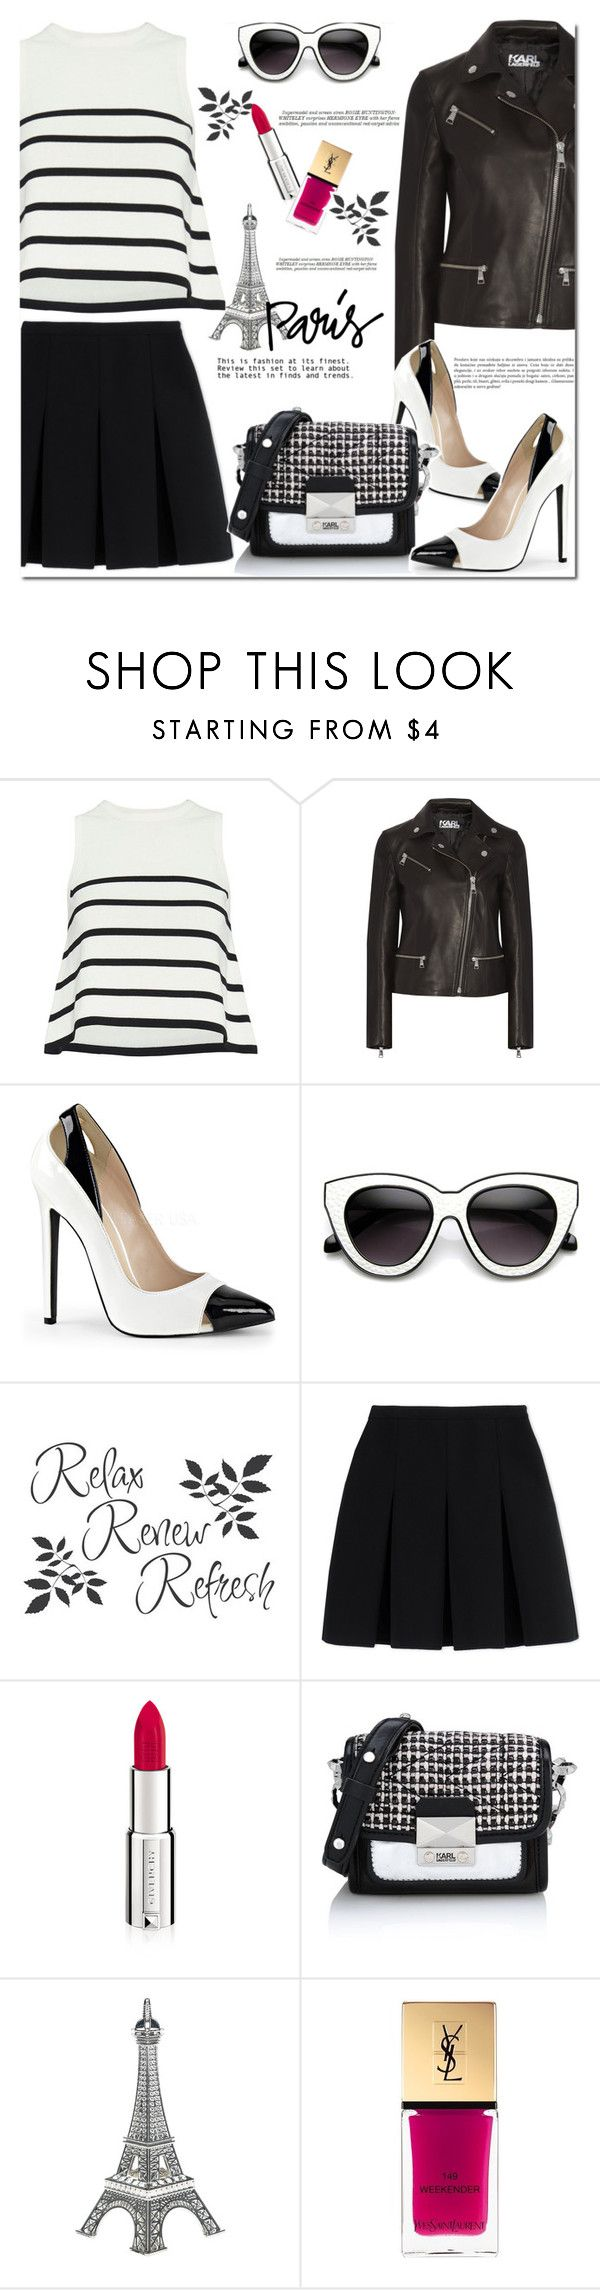 """""""One Direction: Striped Shirts"""" by huda-alalawi ❤ liked on Polyvore featuring Cardigan, Karl Lagerfeld, INDIE HAIR, Alexander Wang, Givenchy, Yves Saint Laurent, Whiteley, stripes and polyvoreeditorial"""